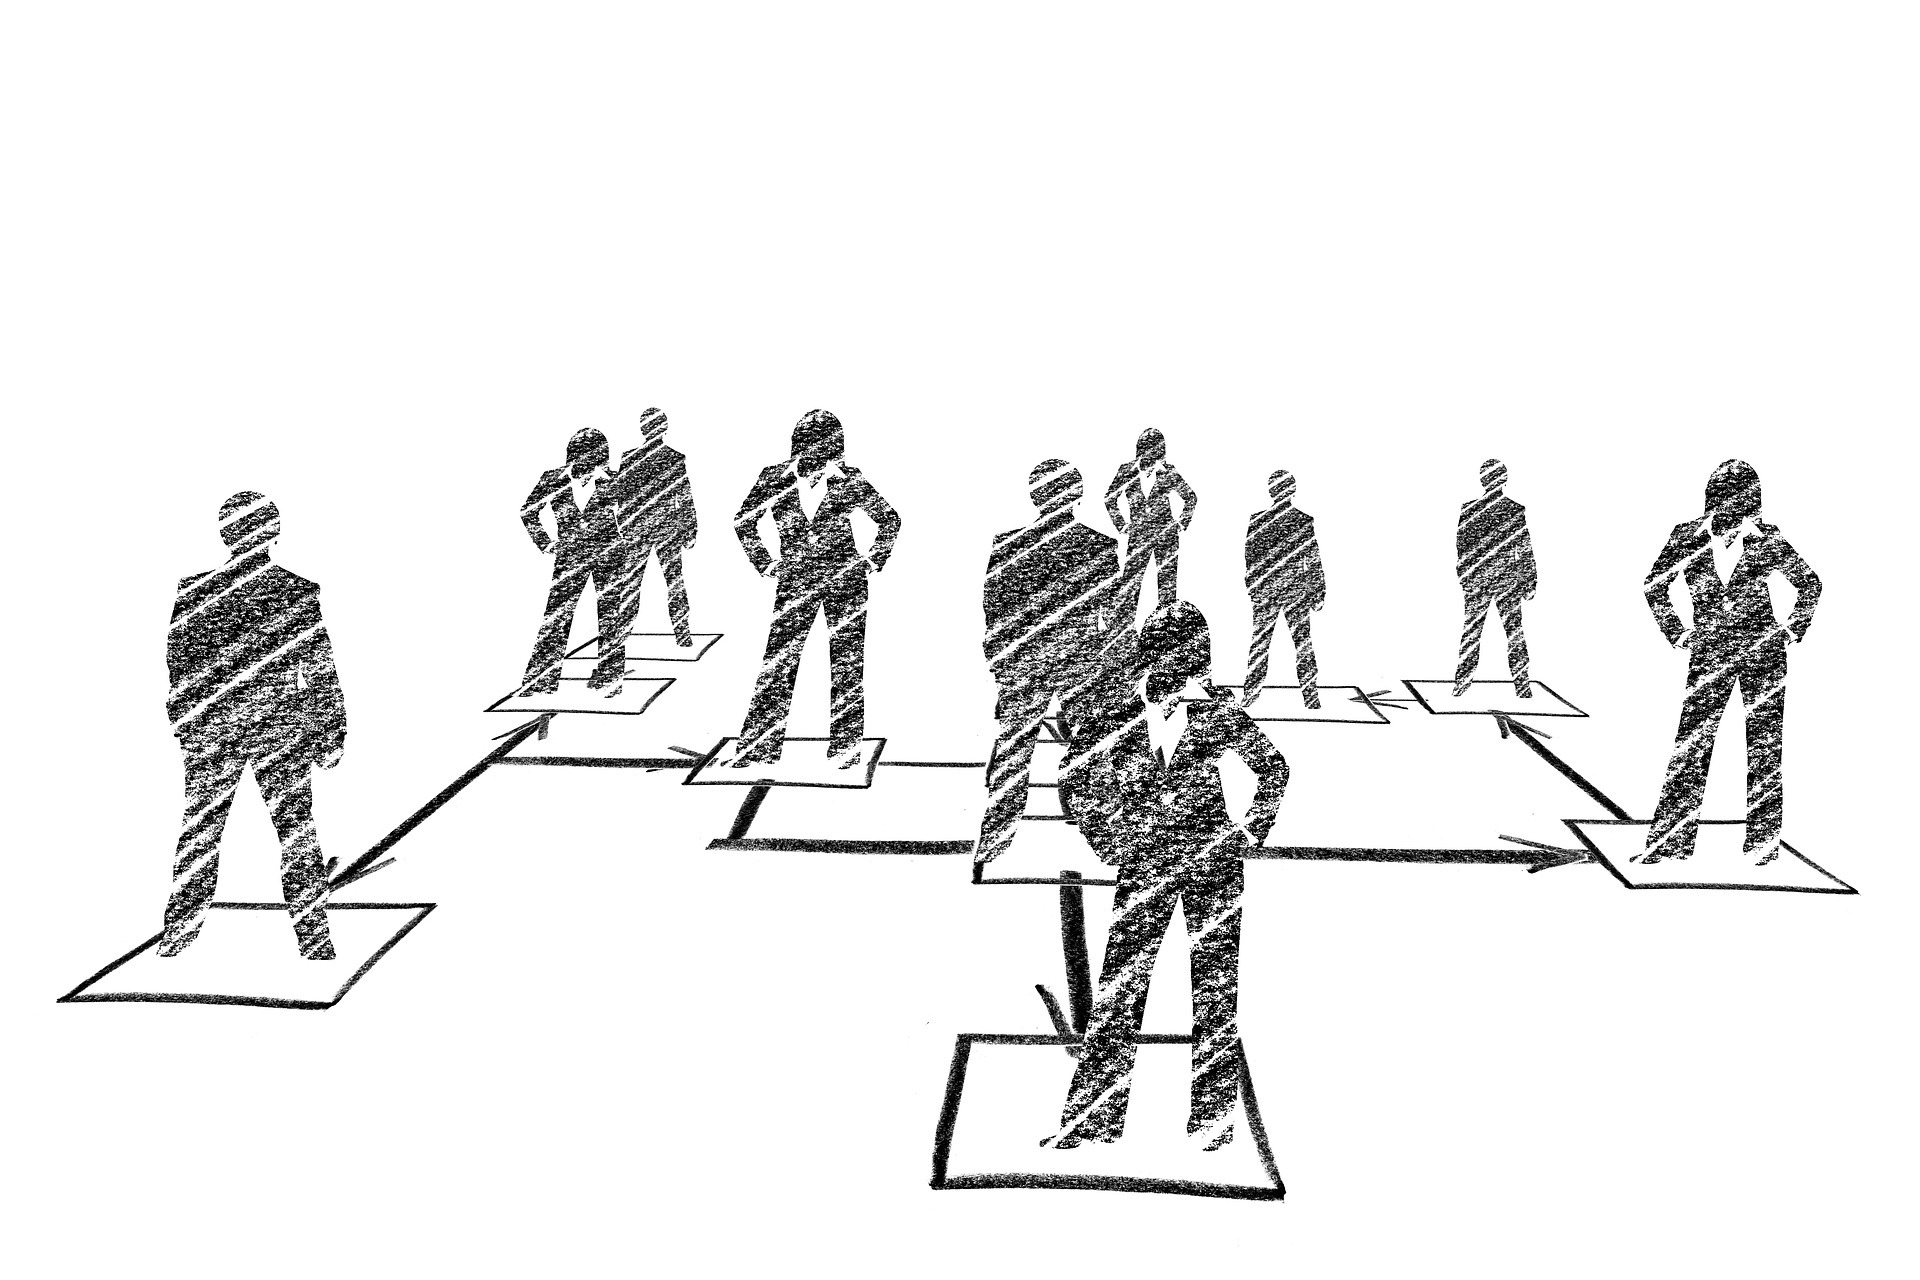 A sketch of people standing together